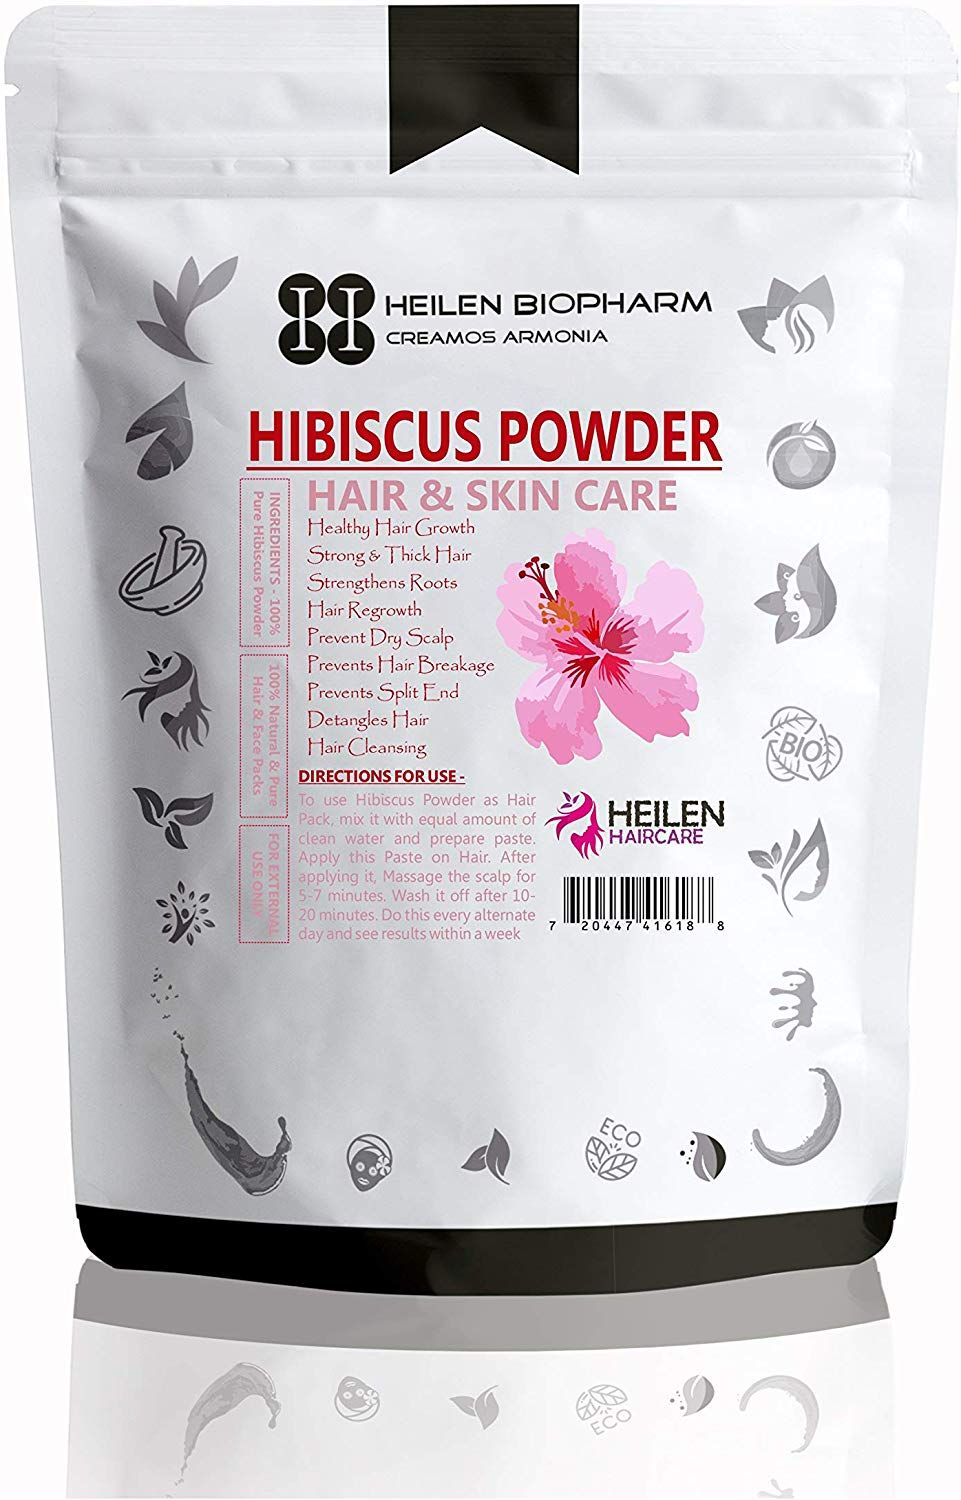 Hibiscus Powder Is Very Important For Diy Packs Of Hair Growth Hibiscus Has A Magical Reputation For Increasing Skin Ela Skin Elasticity Hair Growth Roots Hair